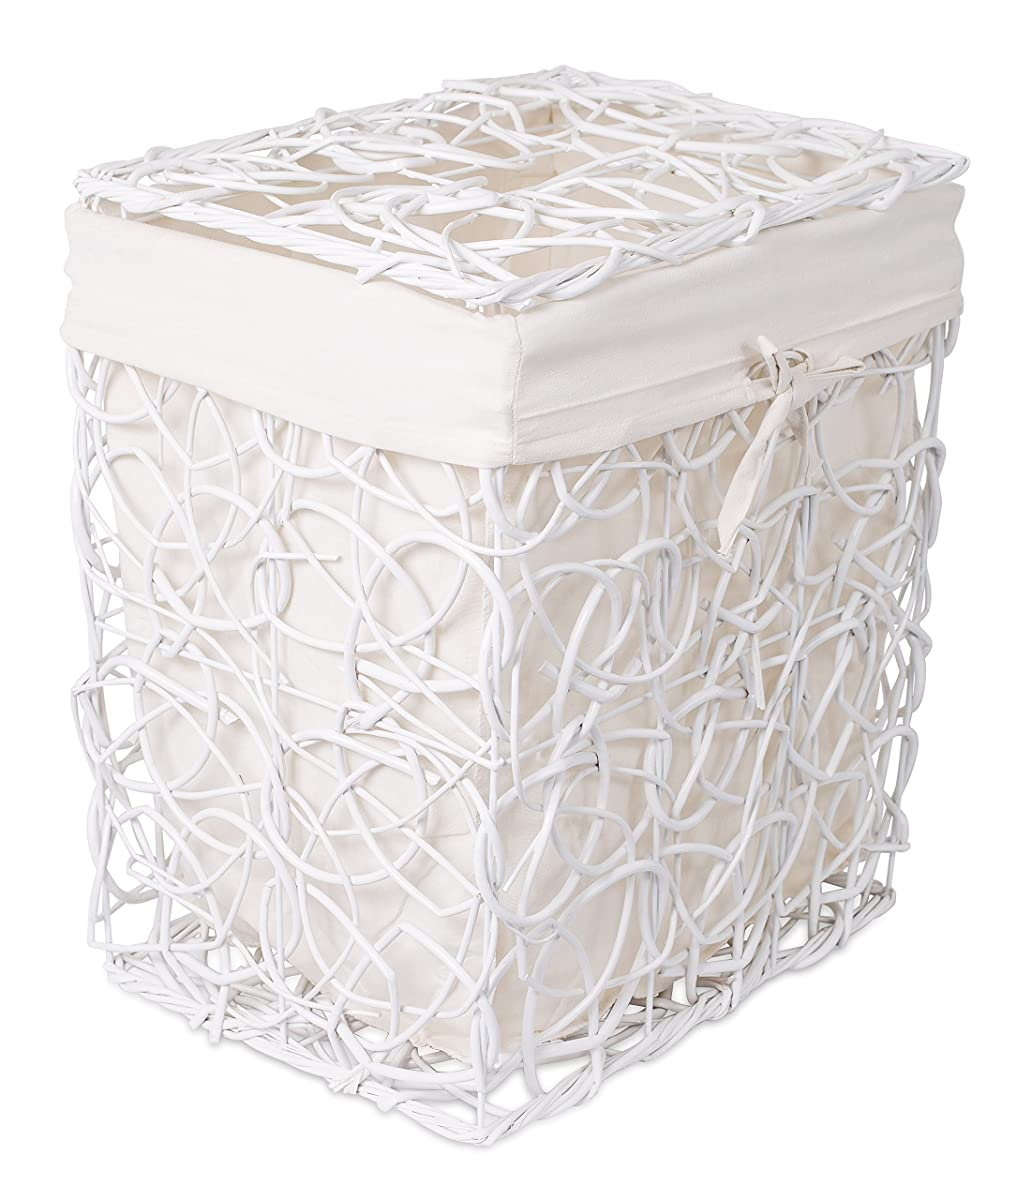 White Hamper With Liner Birdrock Home Decorative Willow Laundry Hamper With Liner